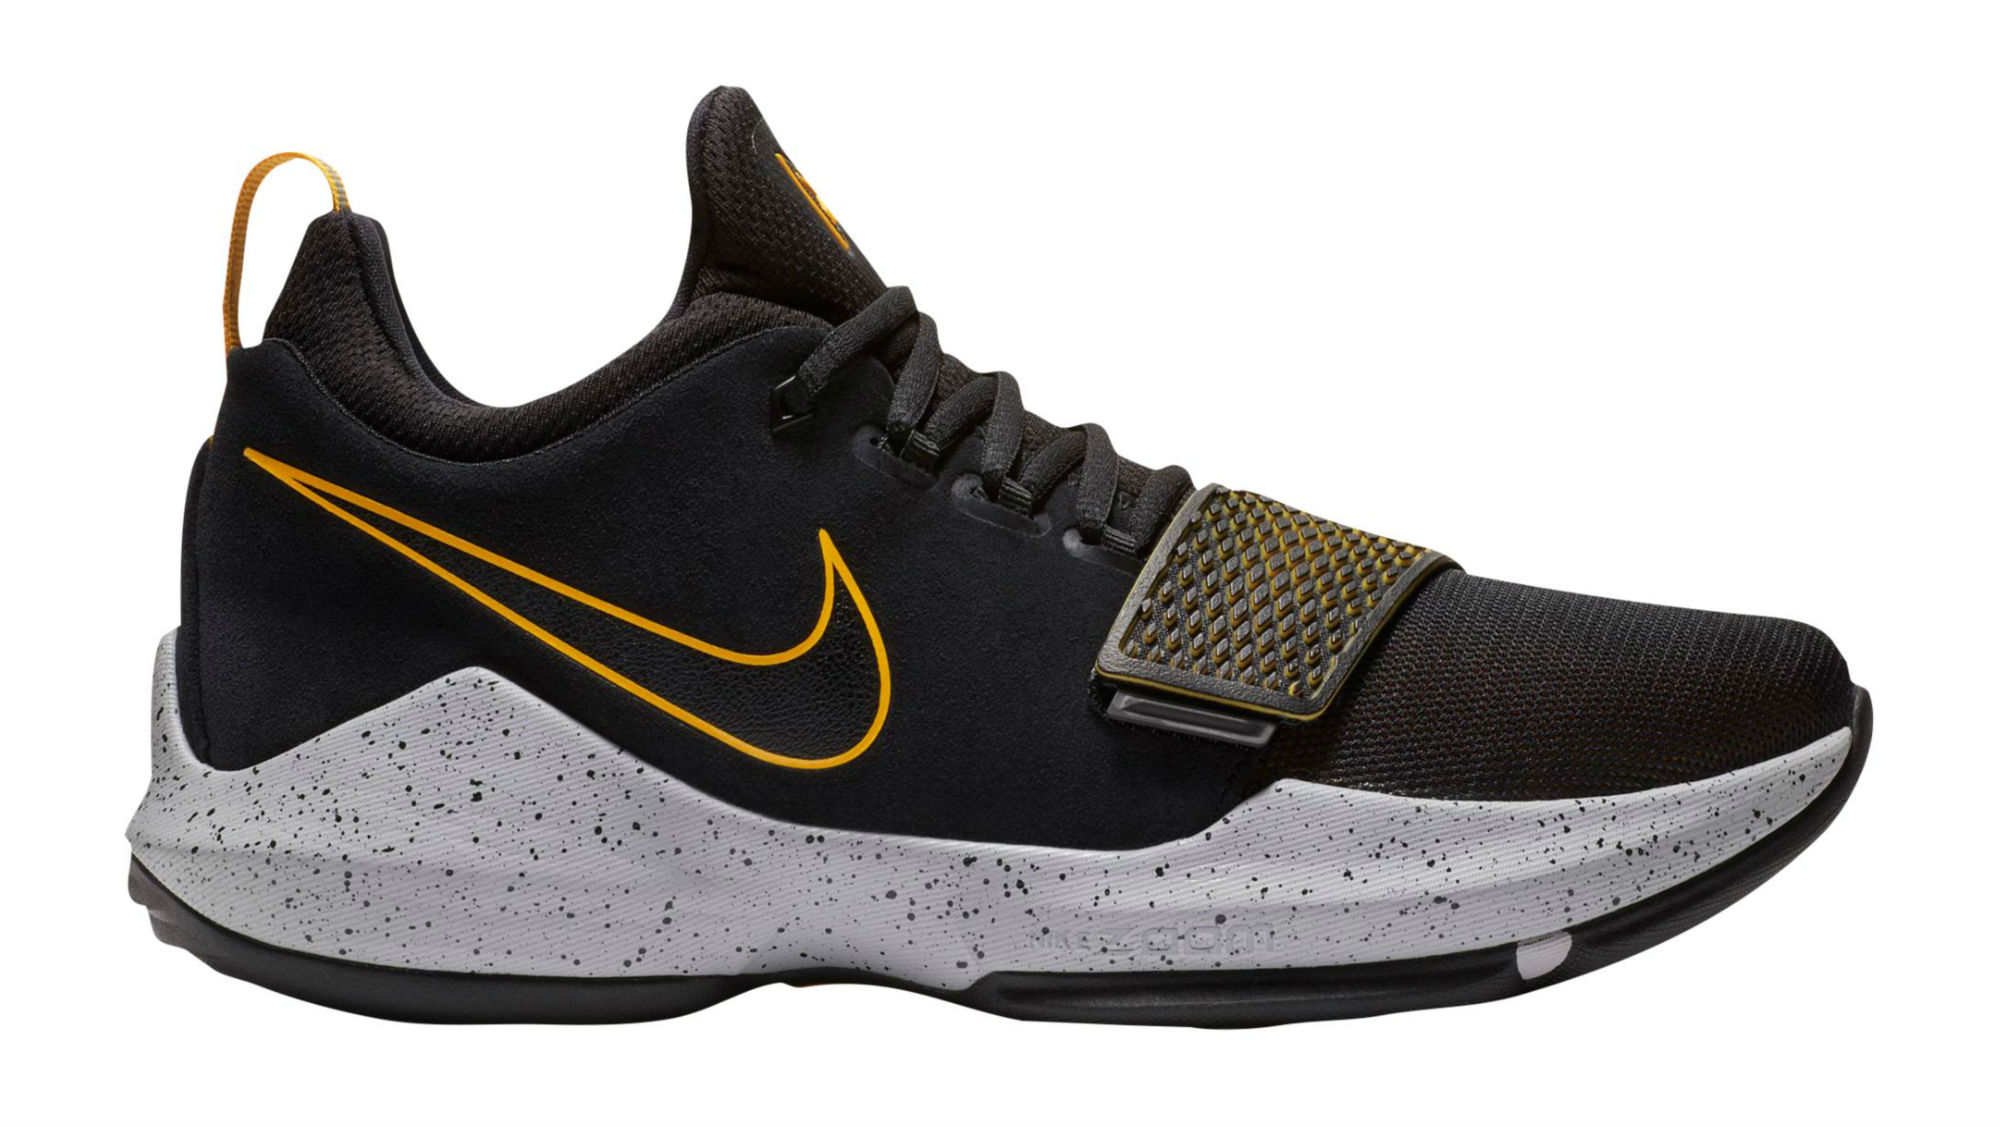 Nike PG 1 Black/University Gold-Wolf Grey